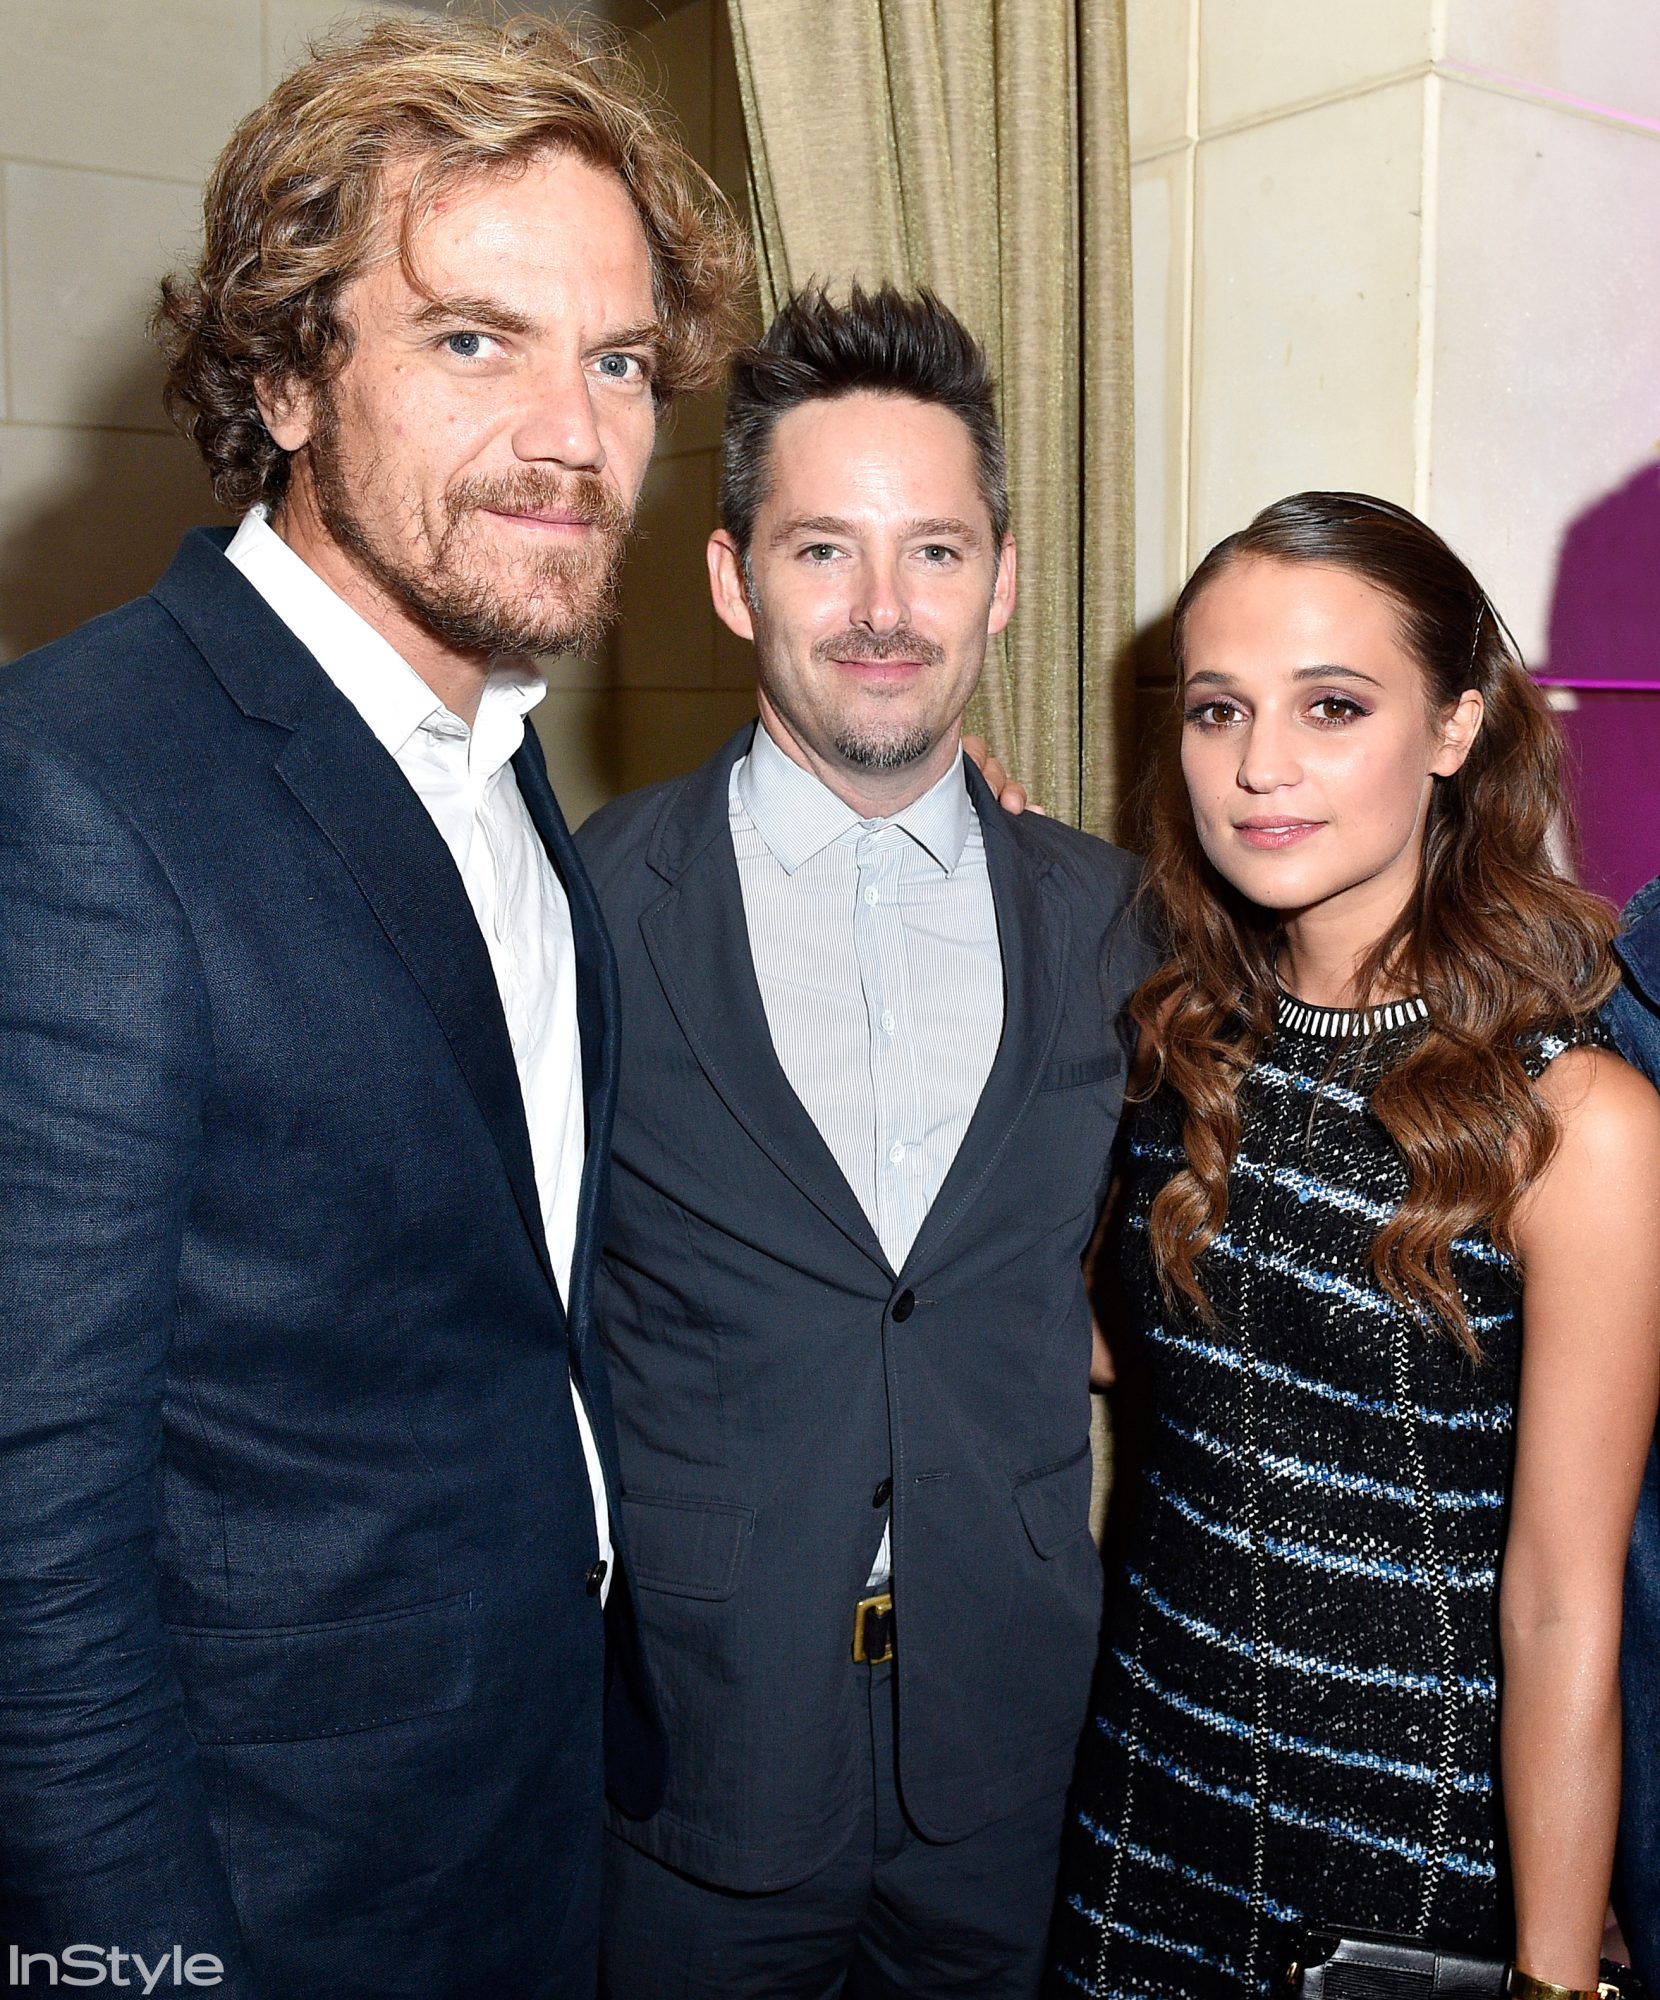 Michael Shannon, Scott Cooper, and Alicia Vikander